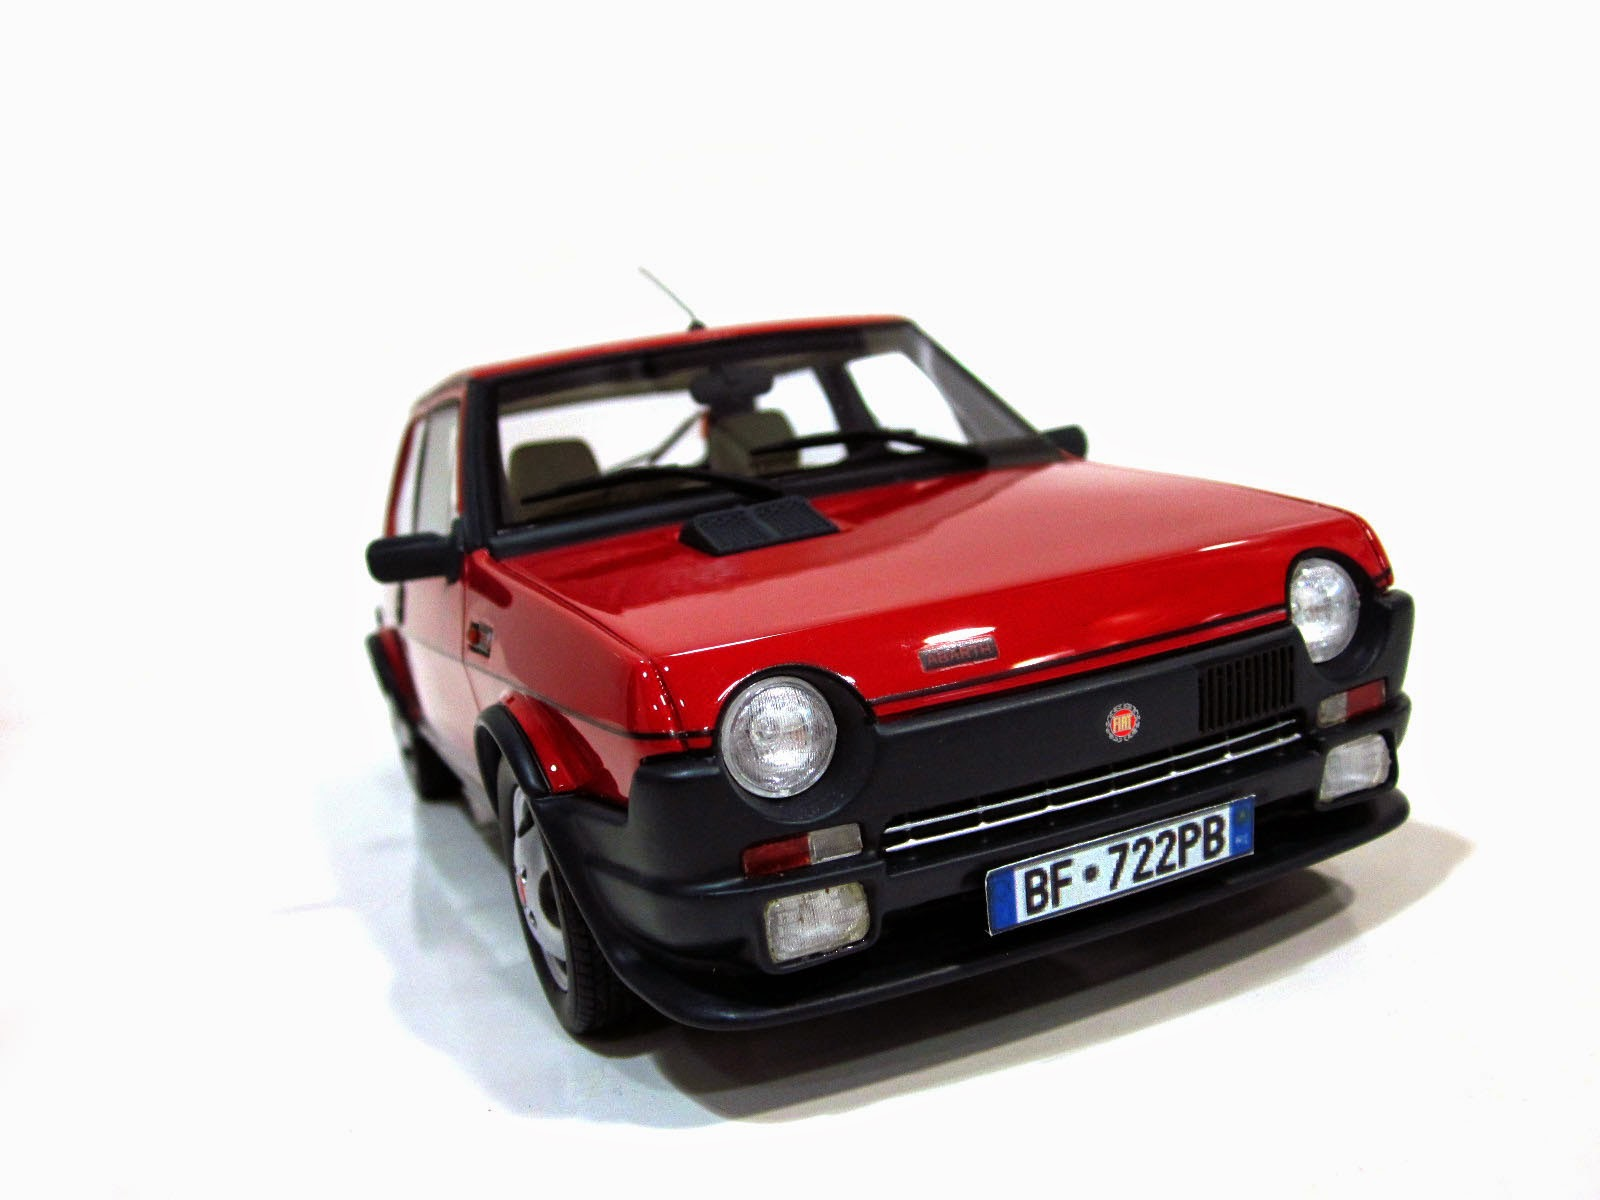 FIAT Ritmo 125 TC Abarth '81 - LaudoRacing Model